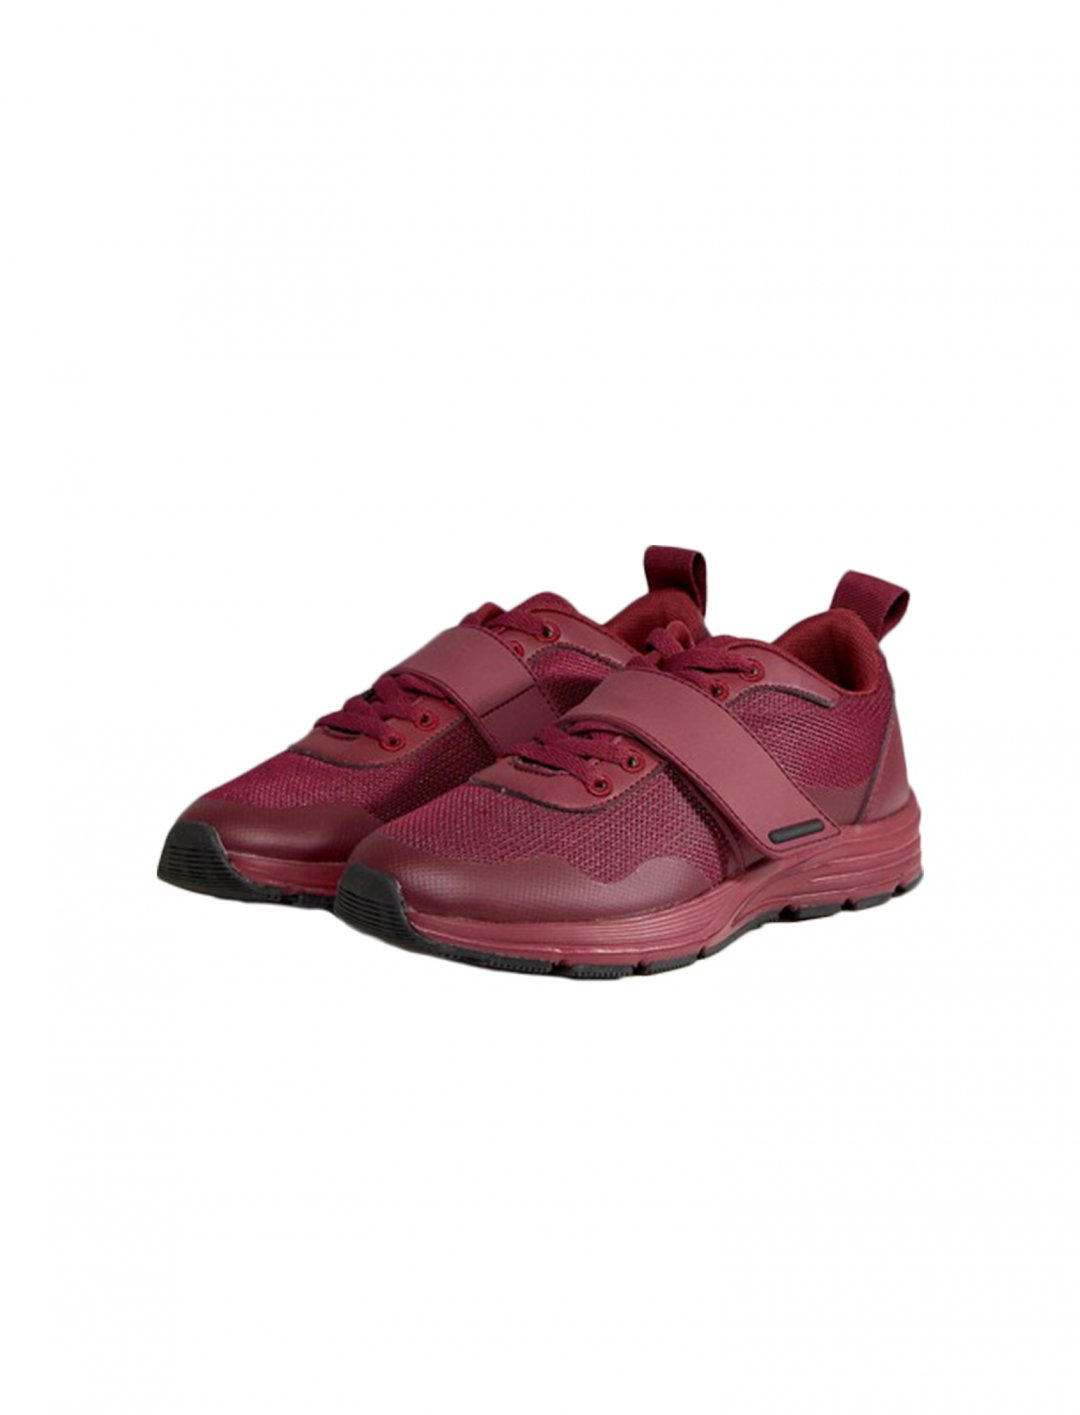 "Asos 4505 Oxblood Trainer {""id"":12,""product_section_id"":1,""name"":""Shoes"",""order"":12} Asos"